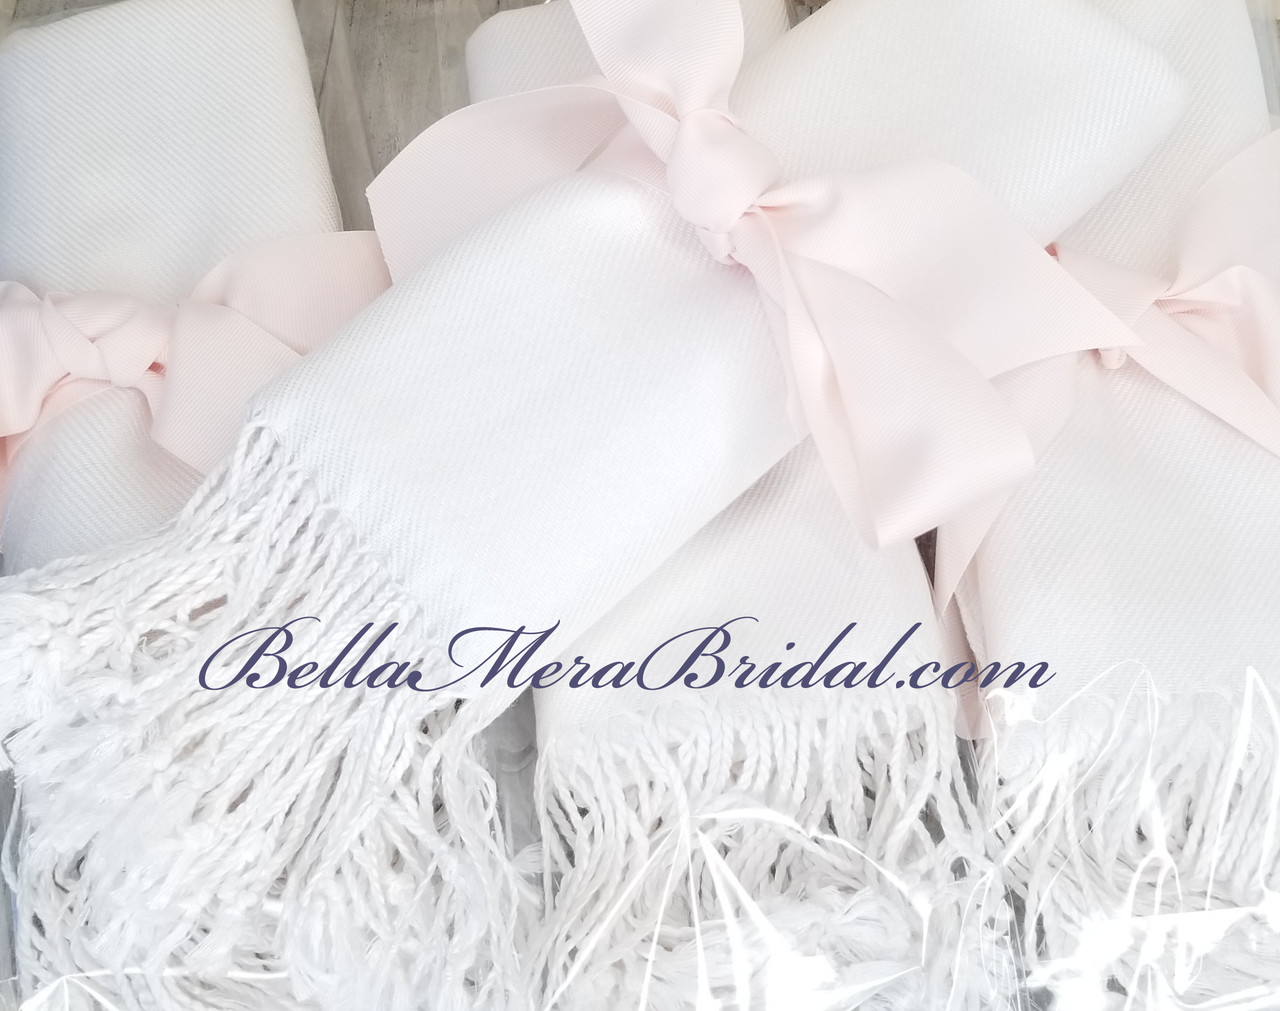 White with Blush Grosgrain - Wedding Pashminas - Bridesmaid Pashminas - Bride Pashminas - Pashmina Scarves